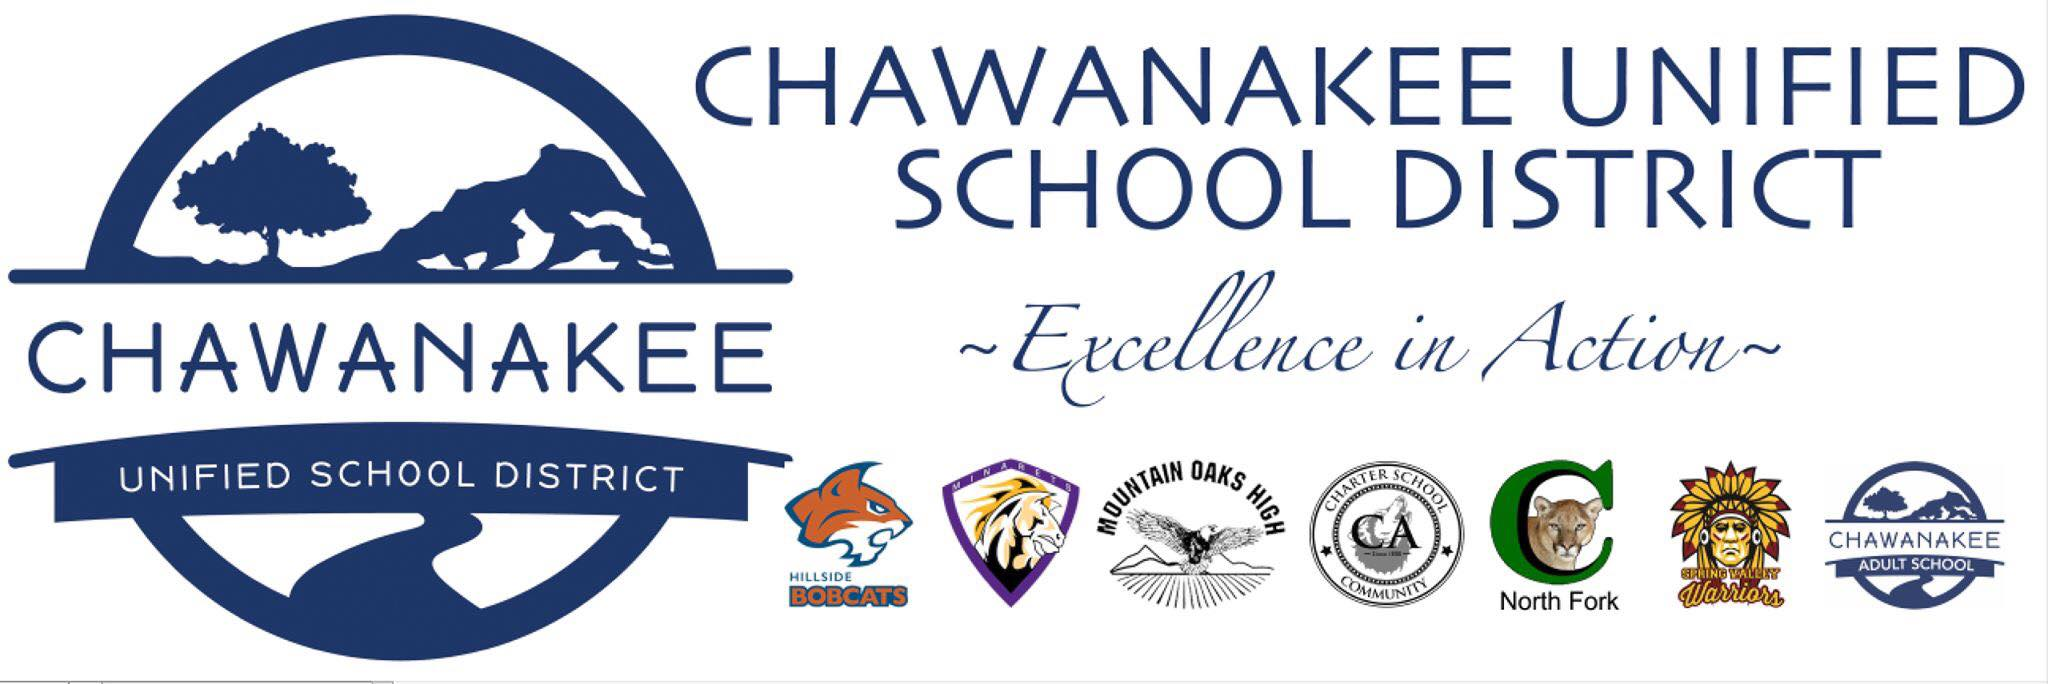 Chawanakee Unified